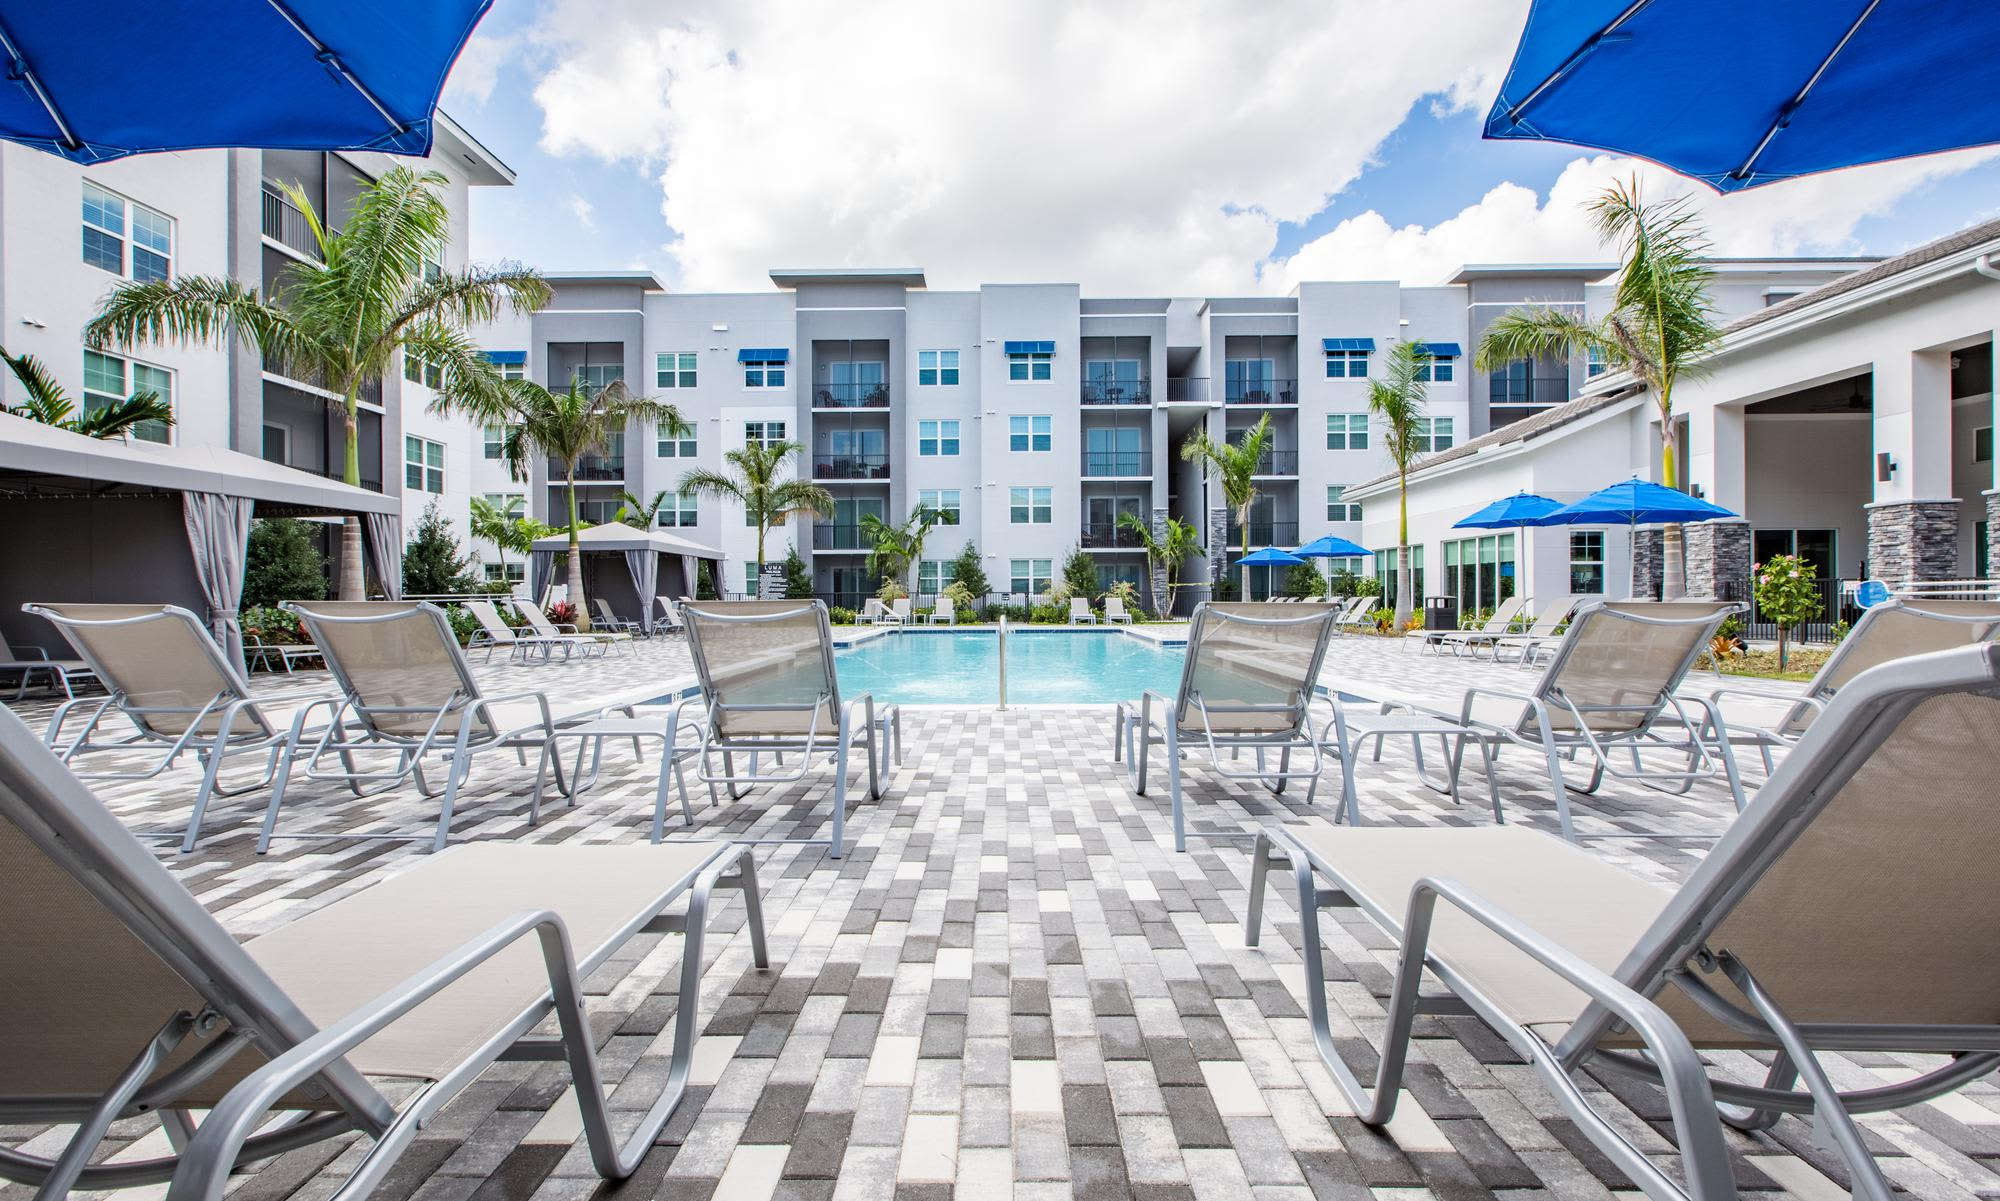 Apartments in West Palm Beach